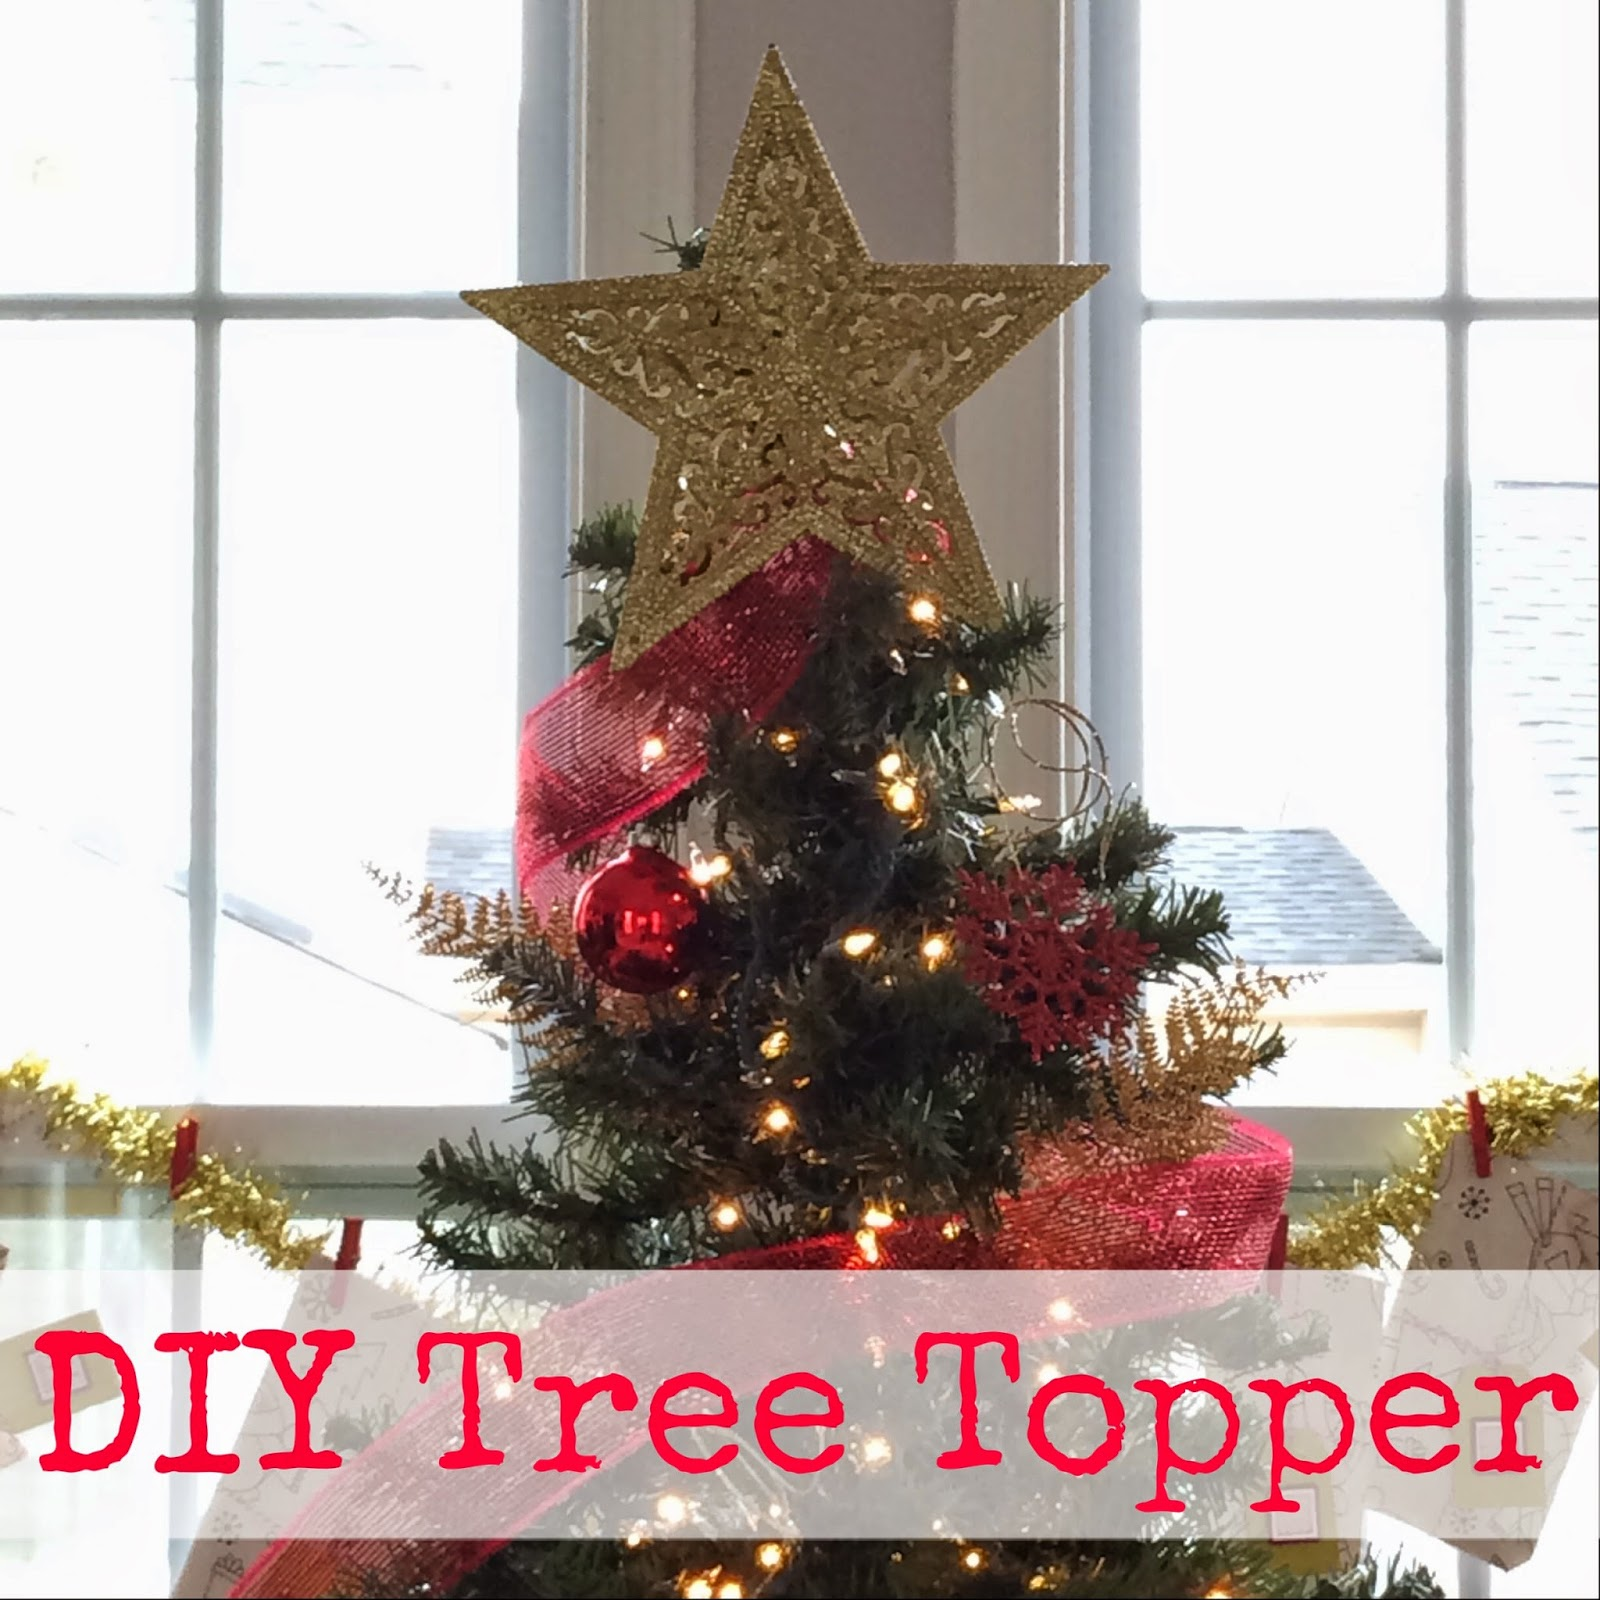 DIY $2 Christmas Tree Topper - LeroyLime